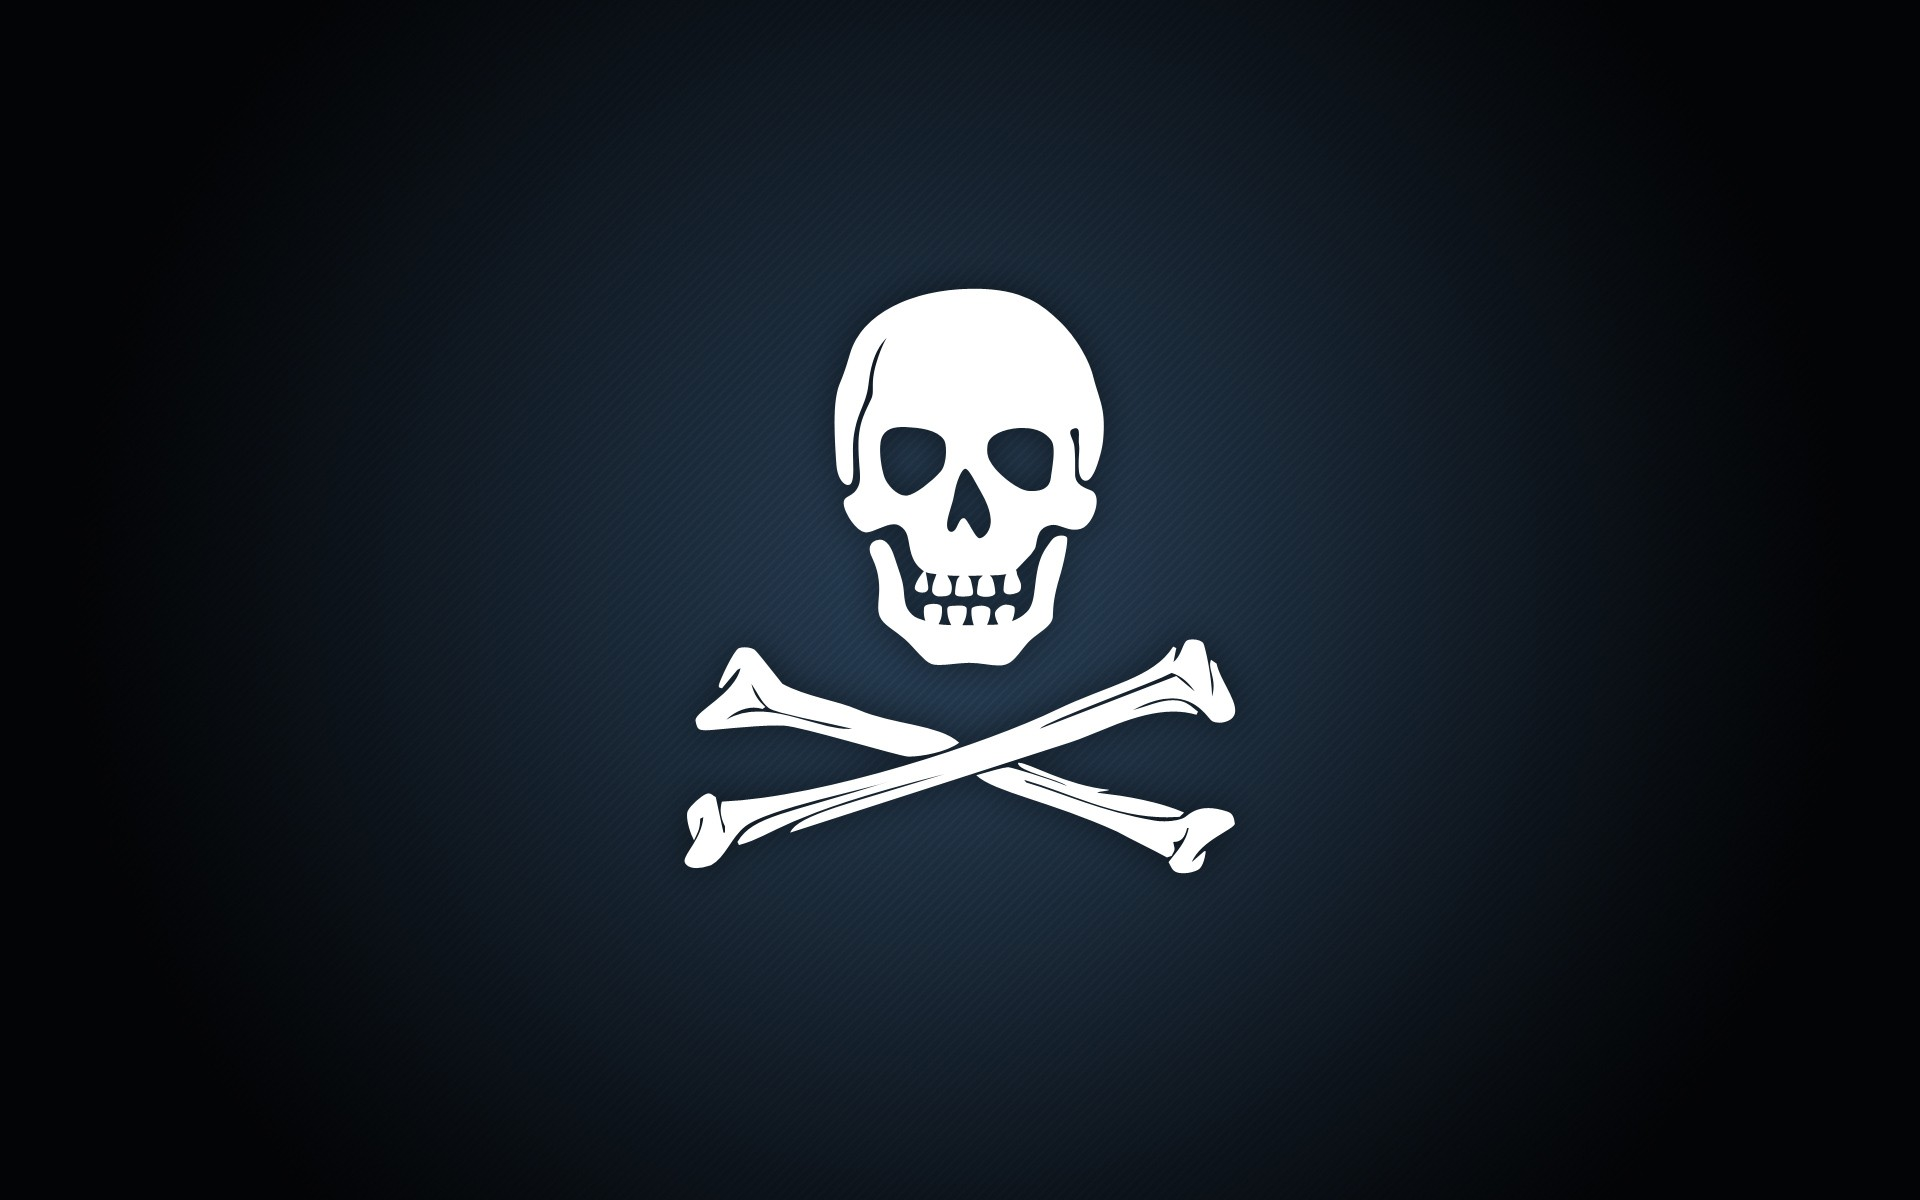 Calavera de piratas hd 1920x1200 - imagenes - wallpapers gratis ...